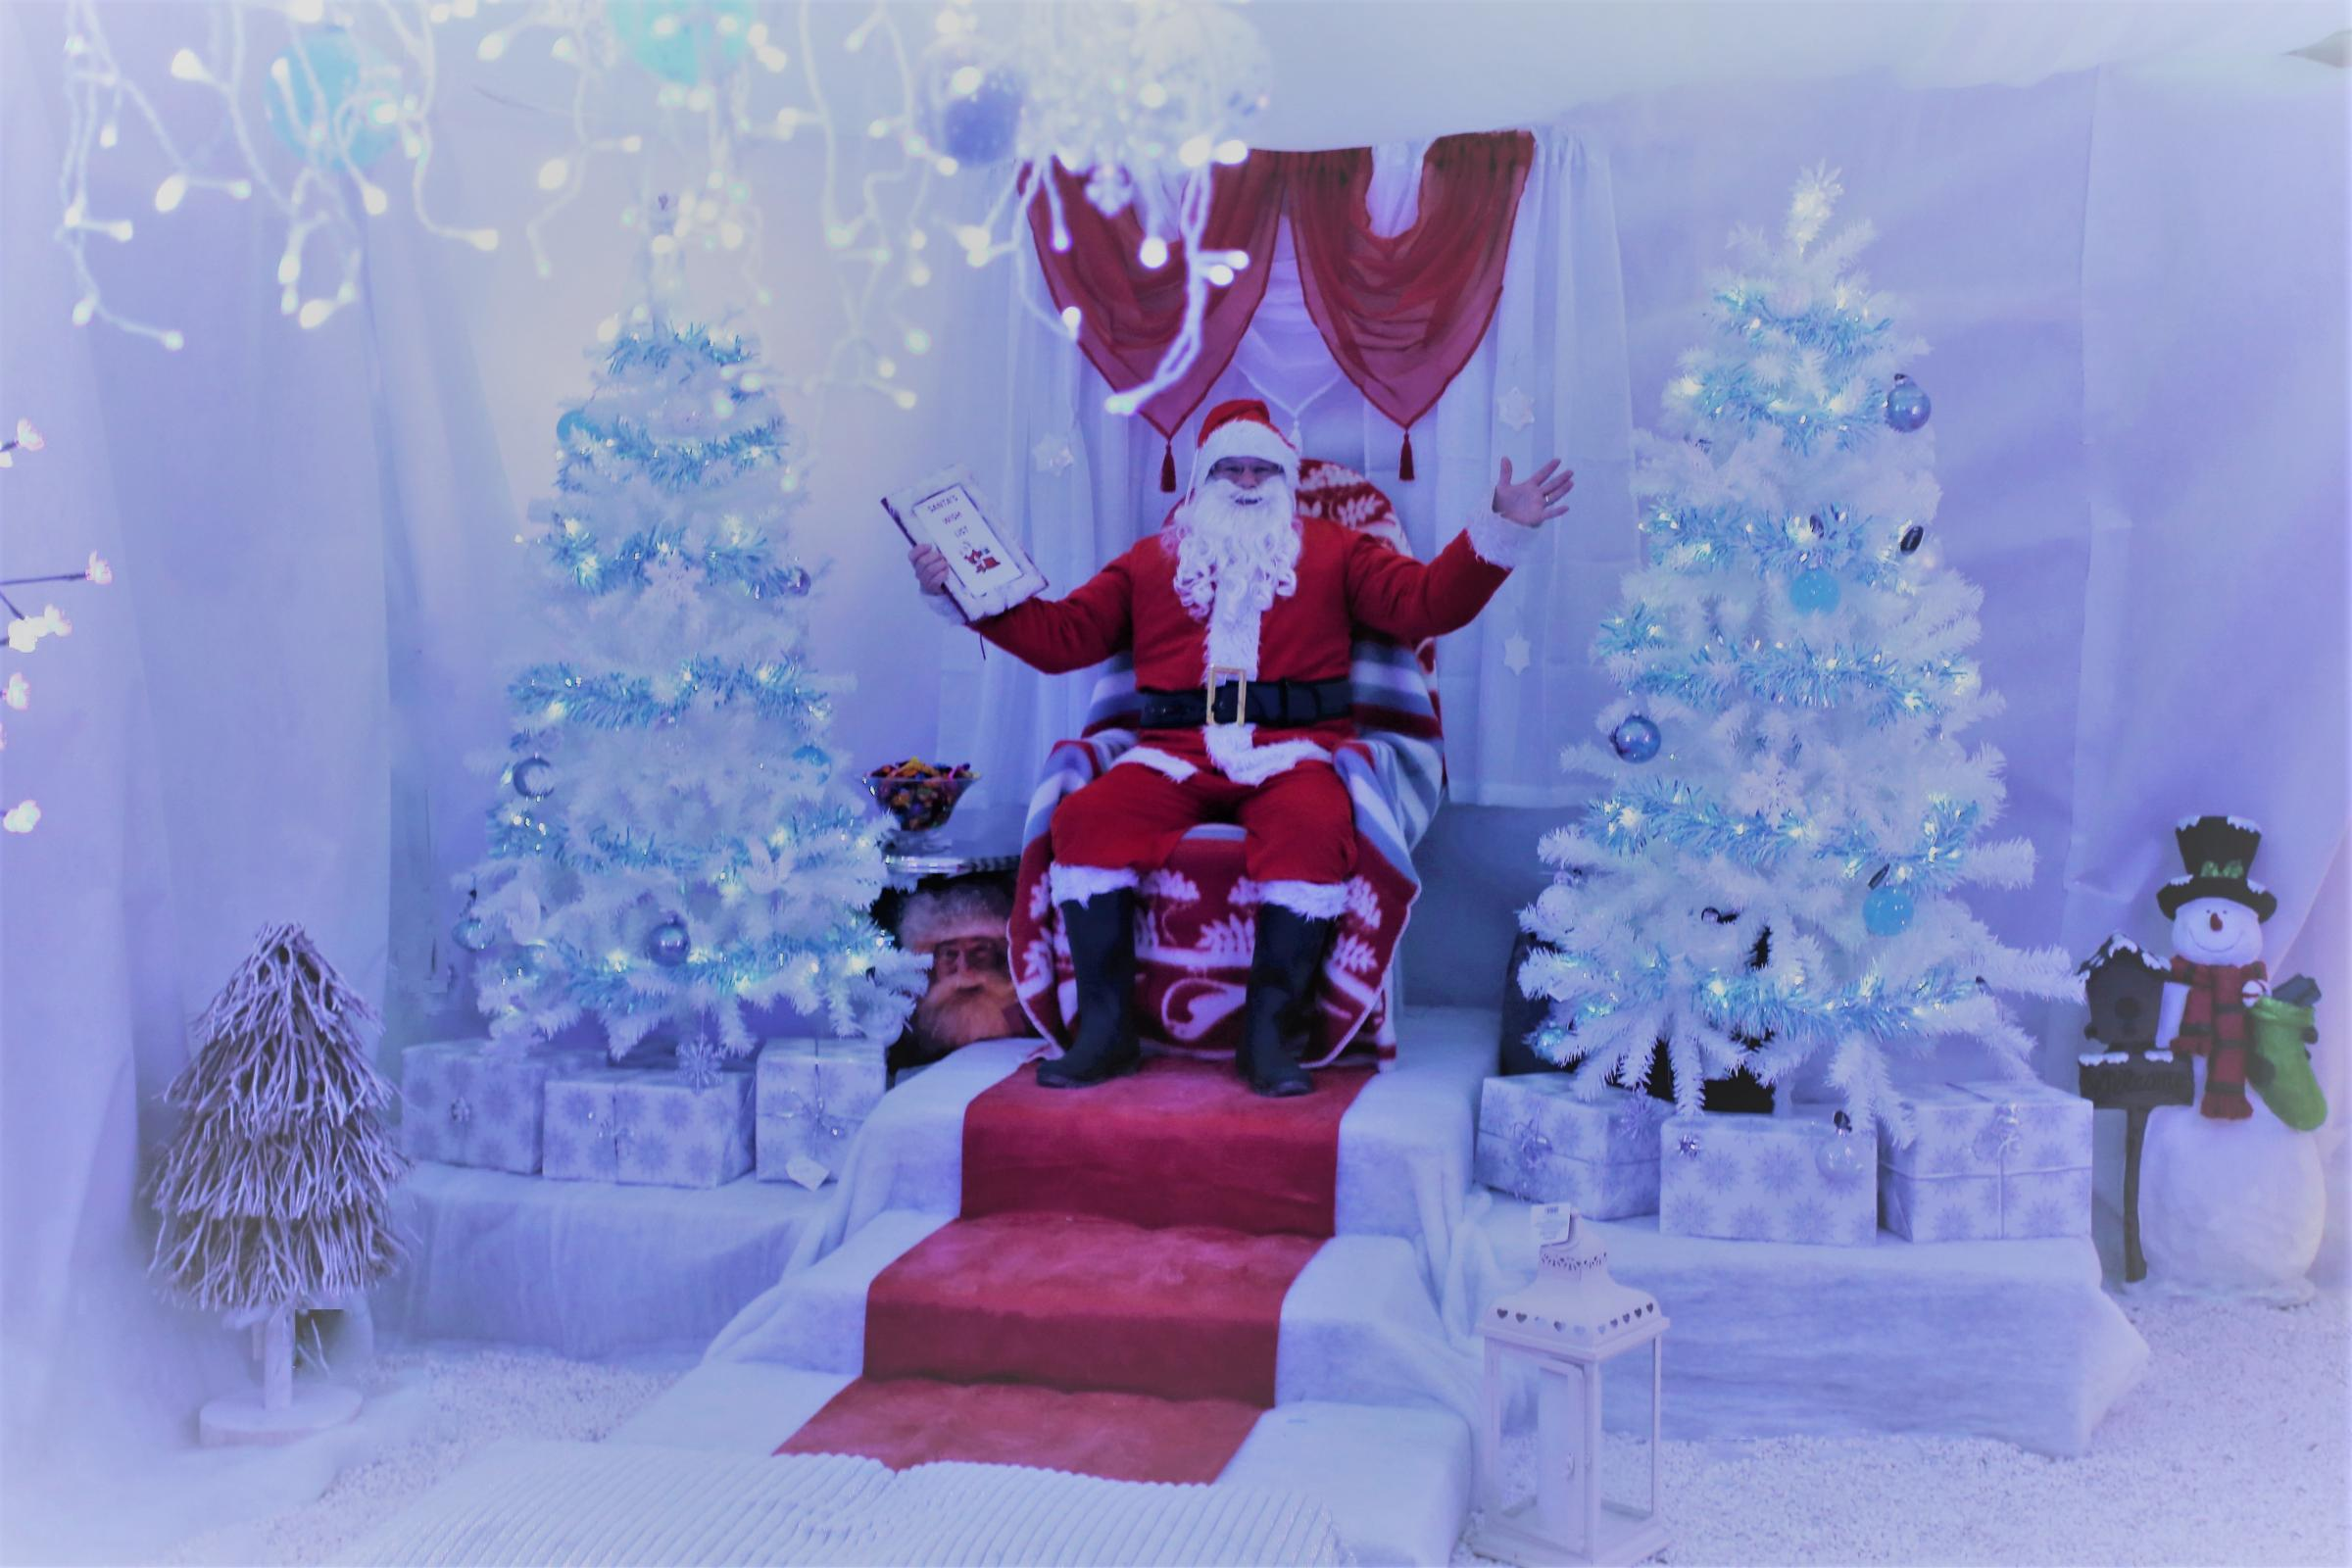 Tickets Selling Fast For Clent Garden Centre Christmas Events Stourbridge News